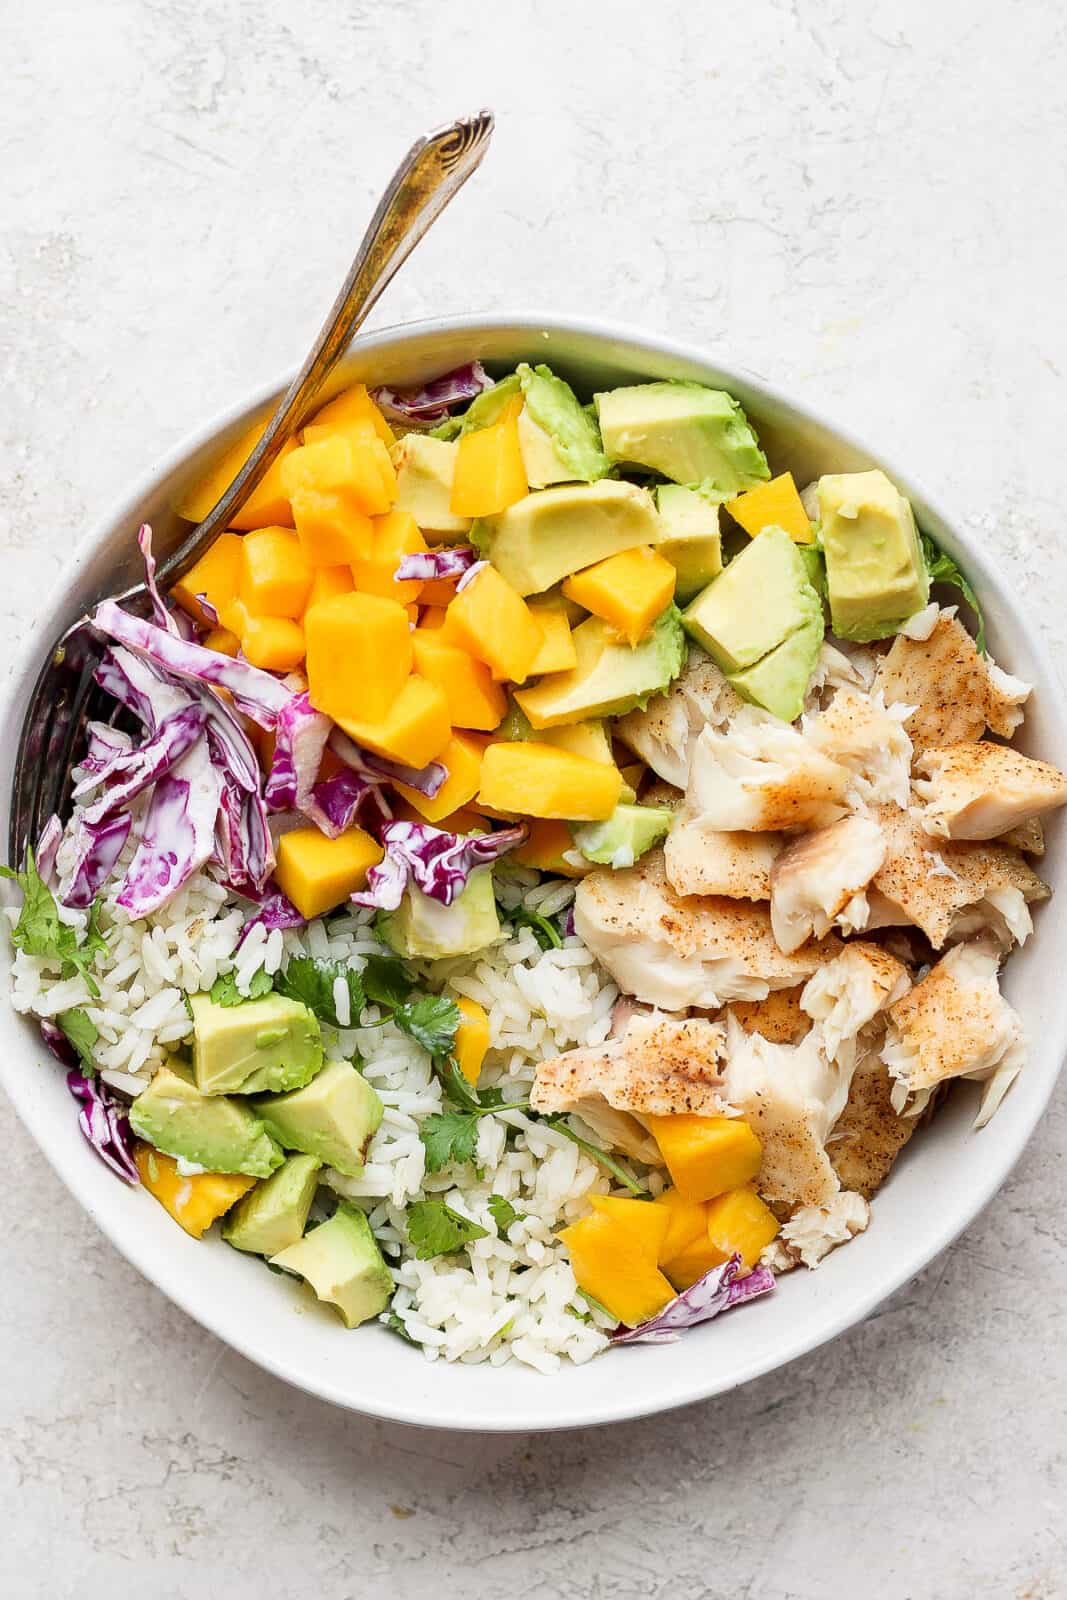 Fish taco bowl with a fork.